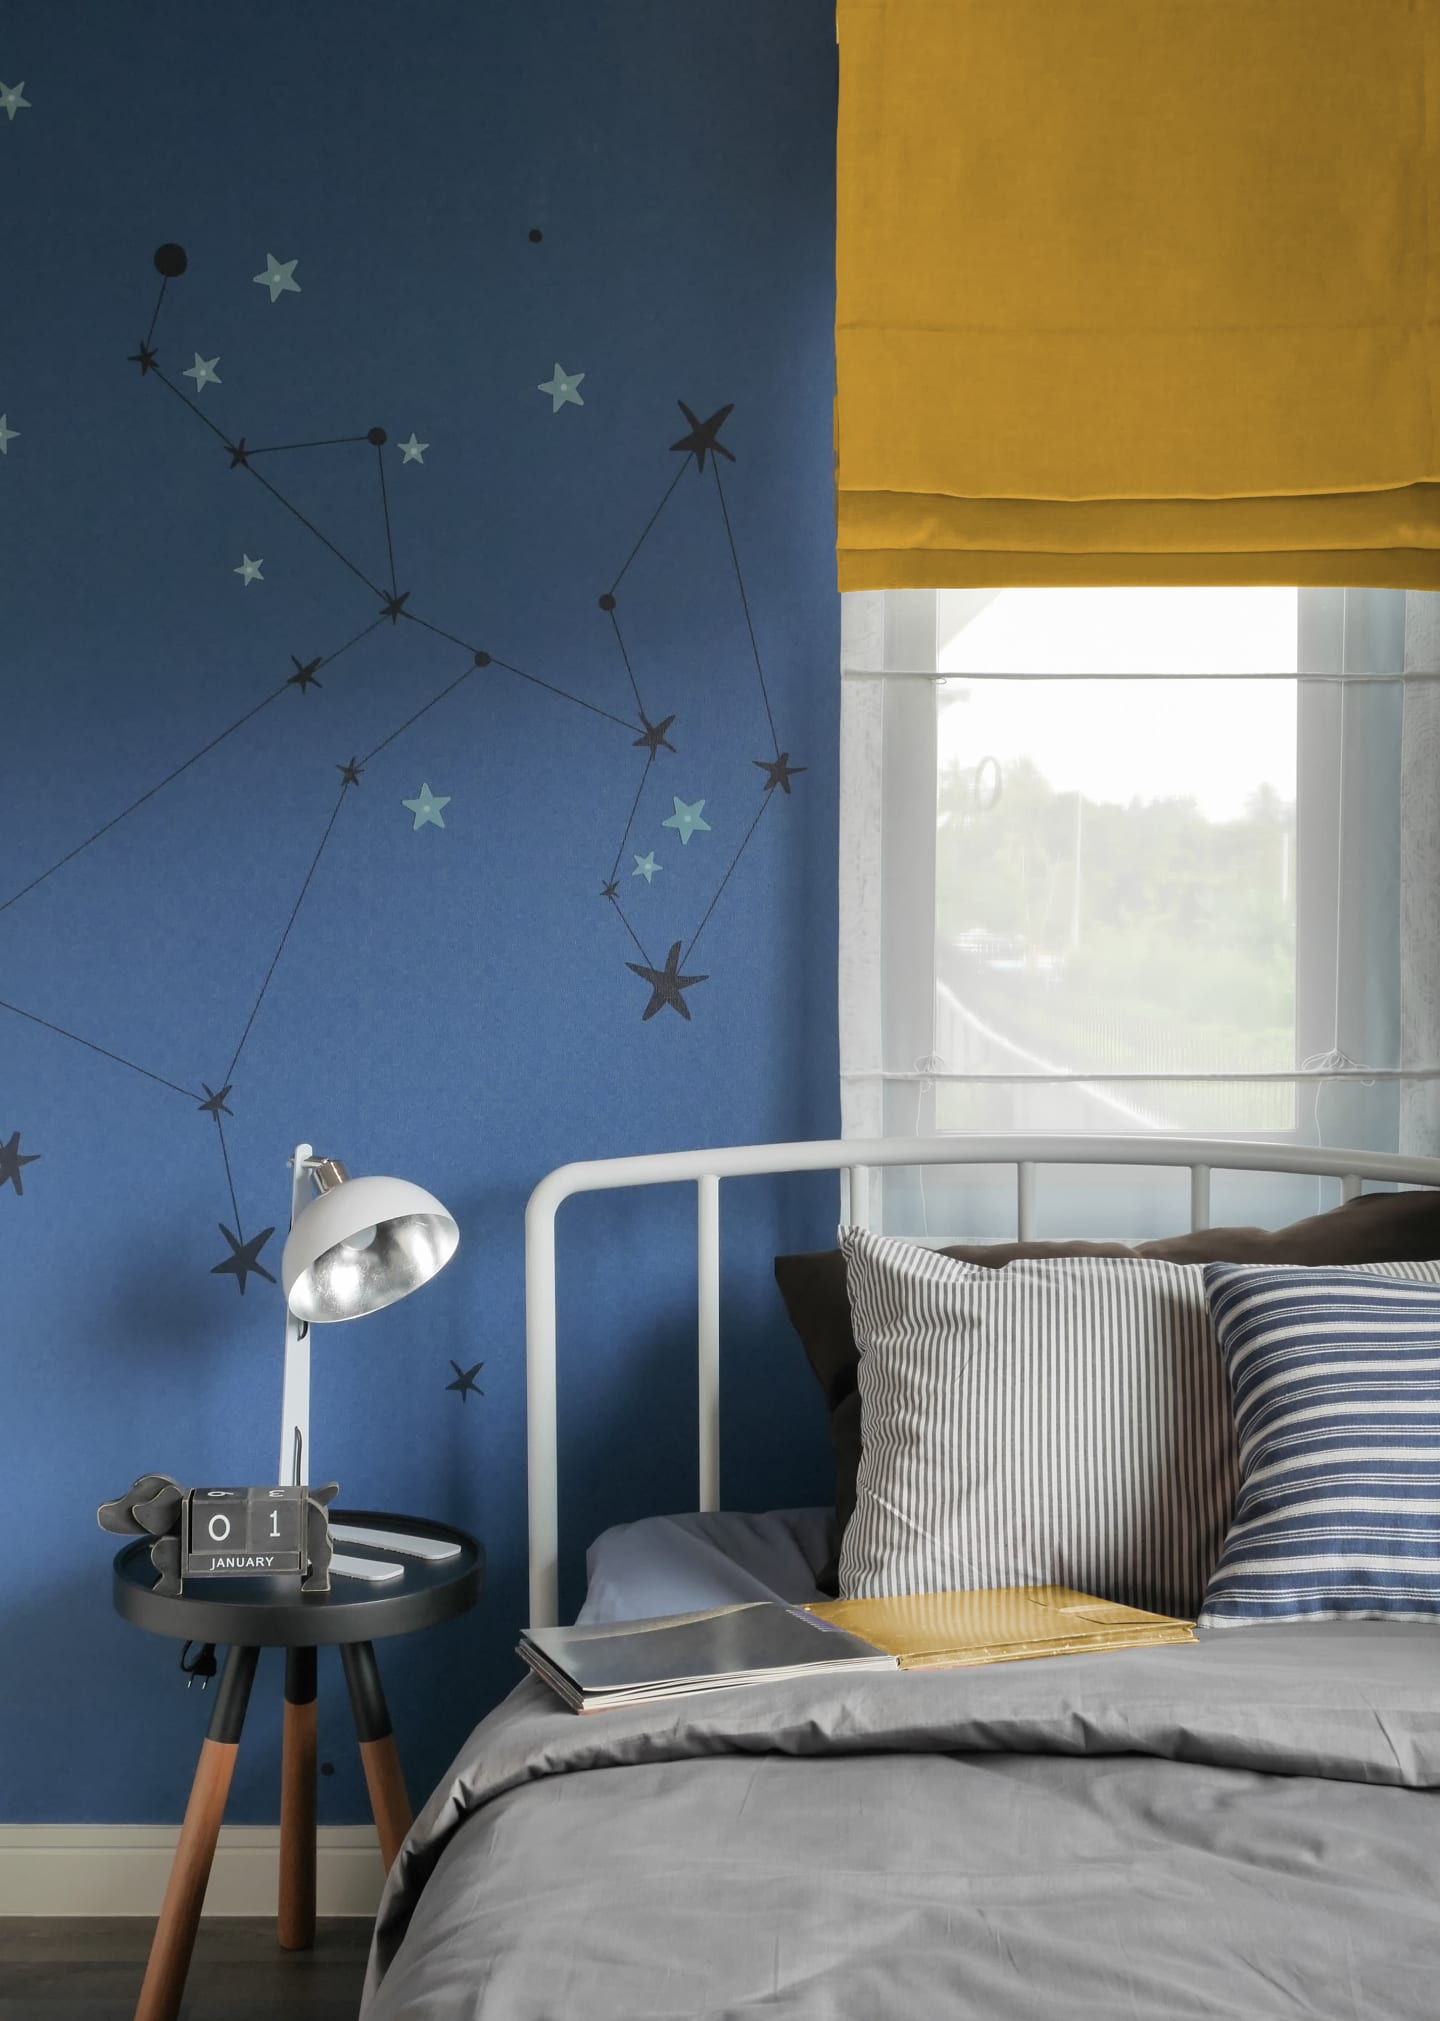 Stars on blue bedroom wall with yellow curtains